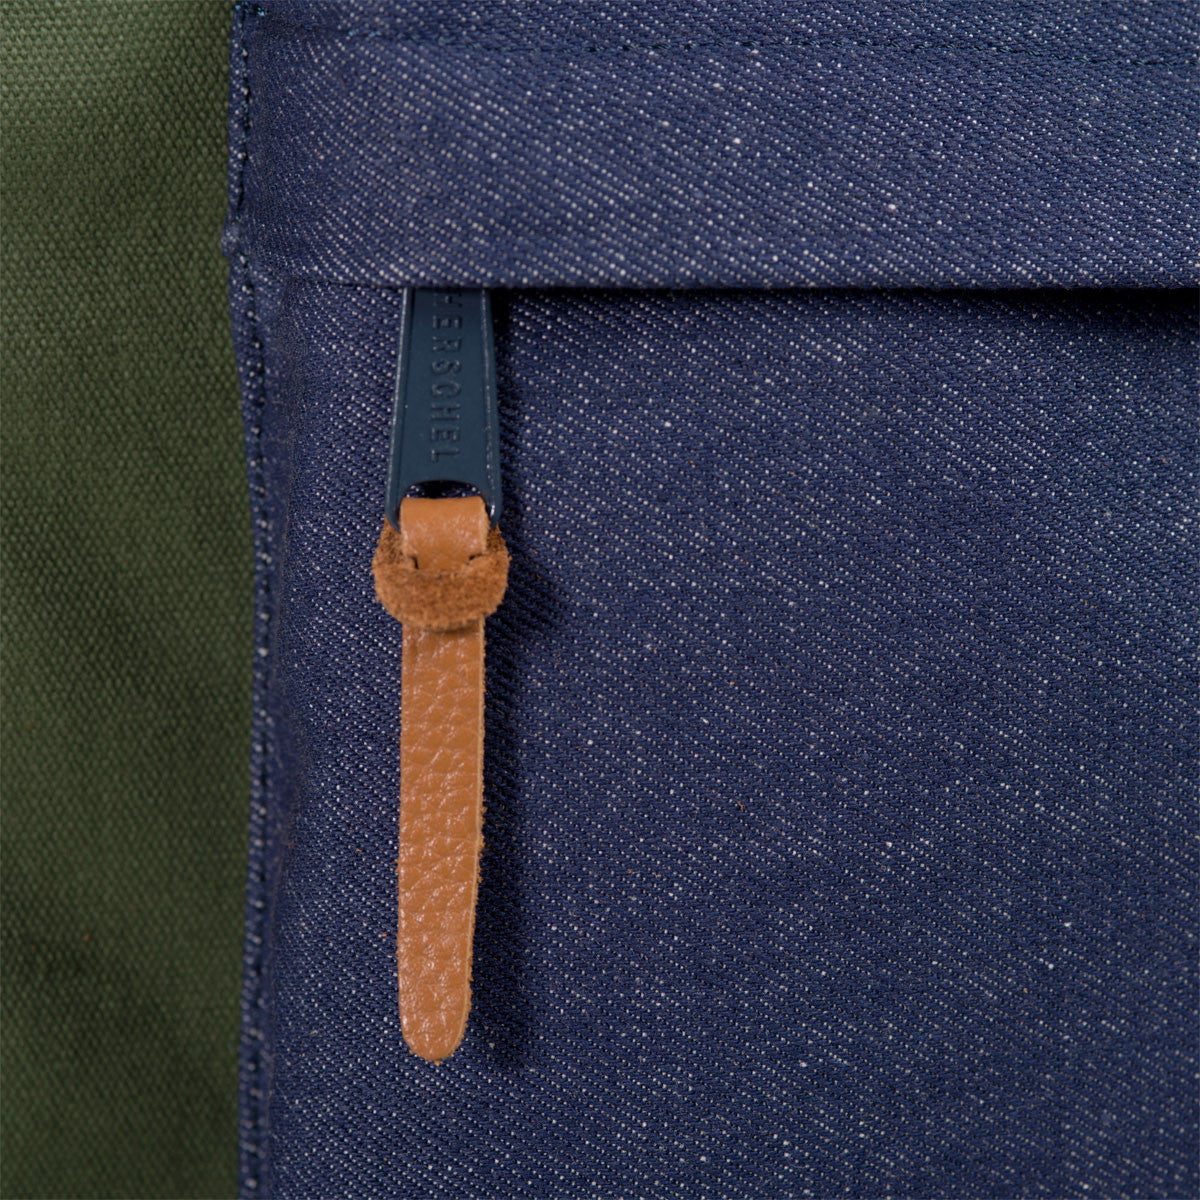 Herschel Supply Co.: Heritage Backpack - Army Coated Cotton Canvas / Indigo Denim (Select Series) detail 2